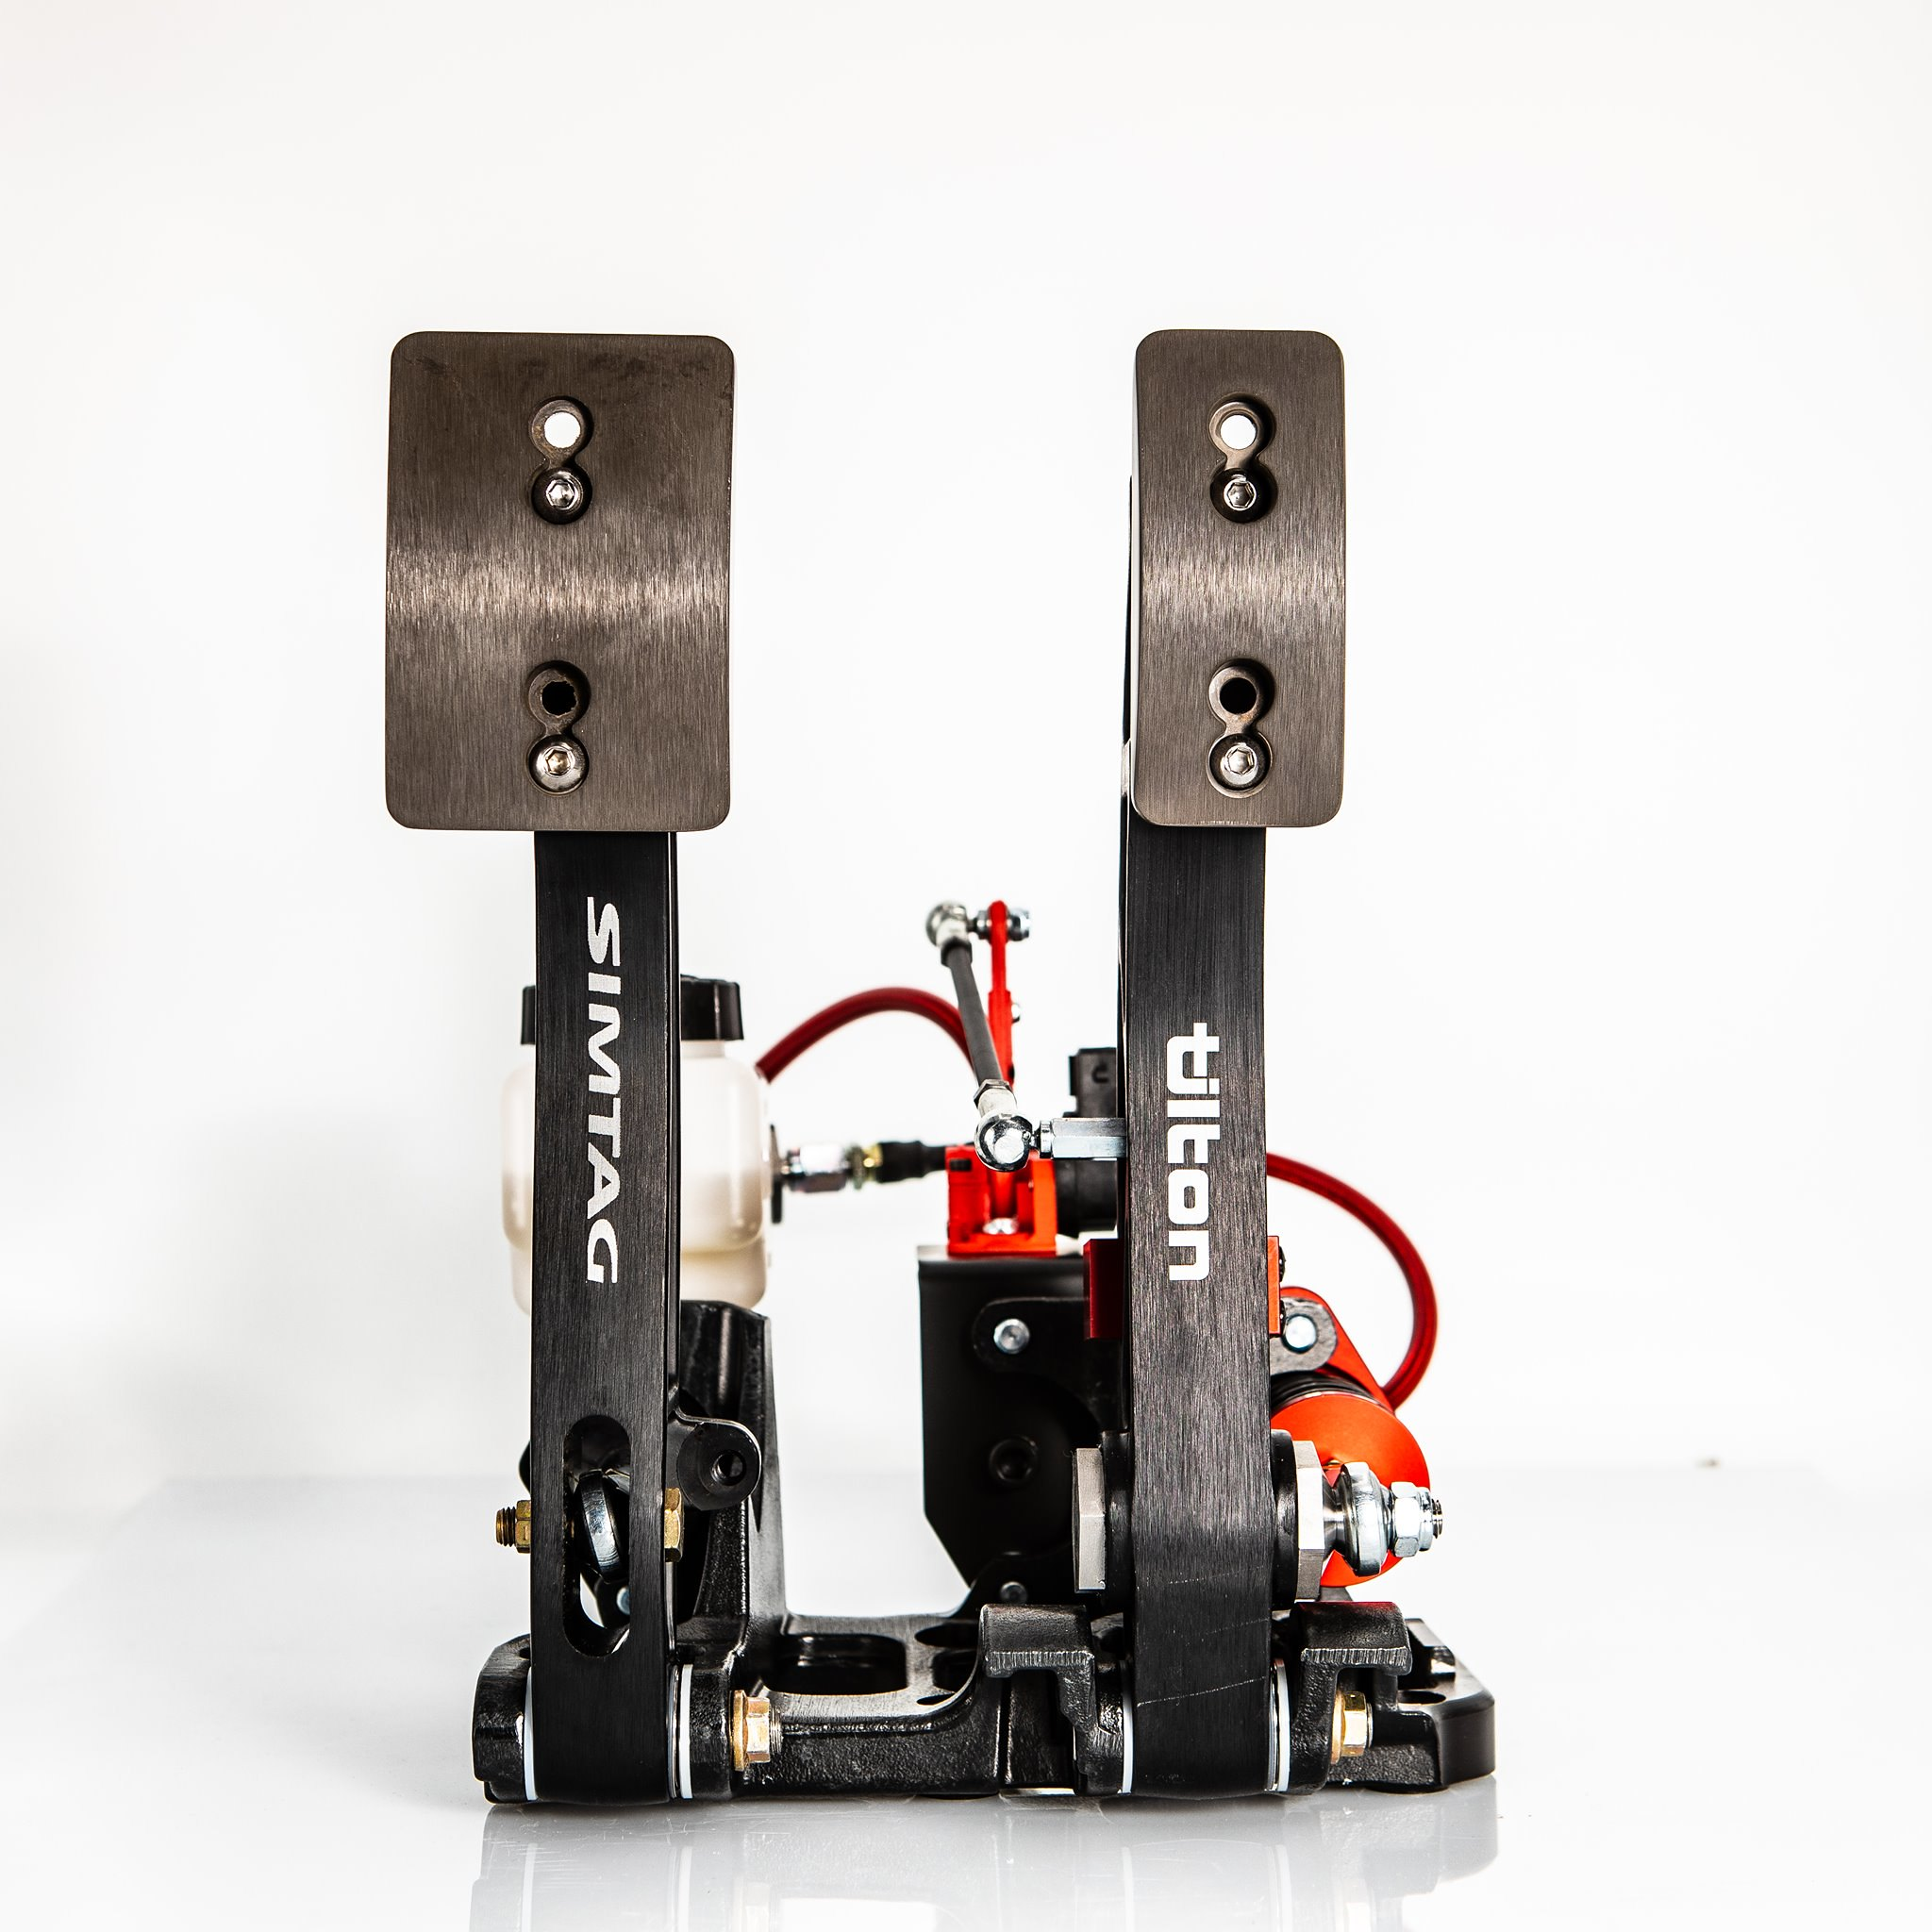 Simtag Hydraulic 2-pedal set Racer Edition 2